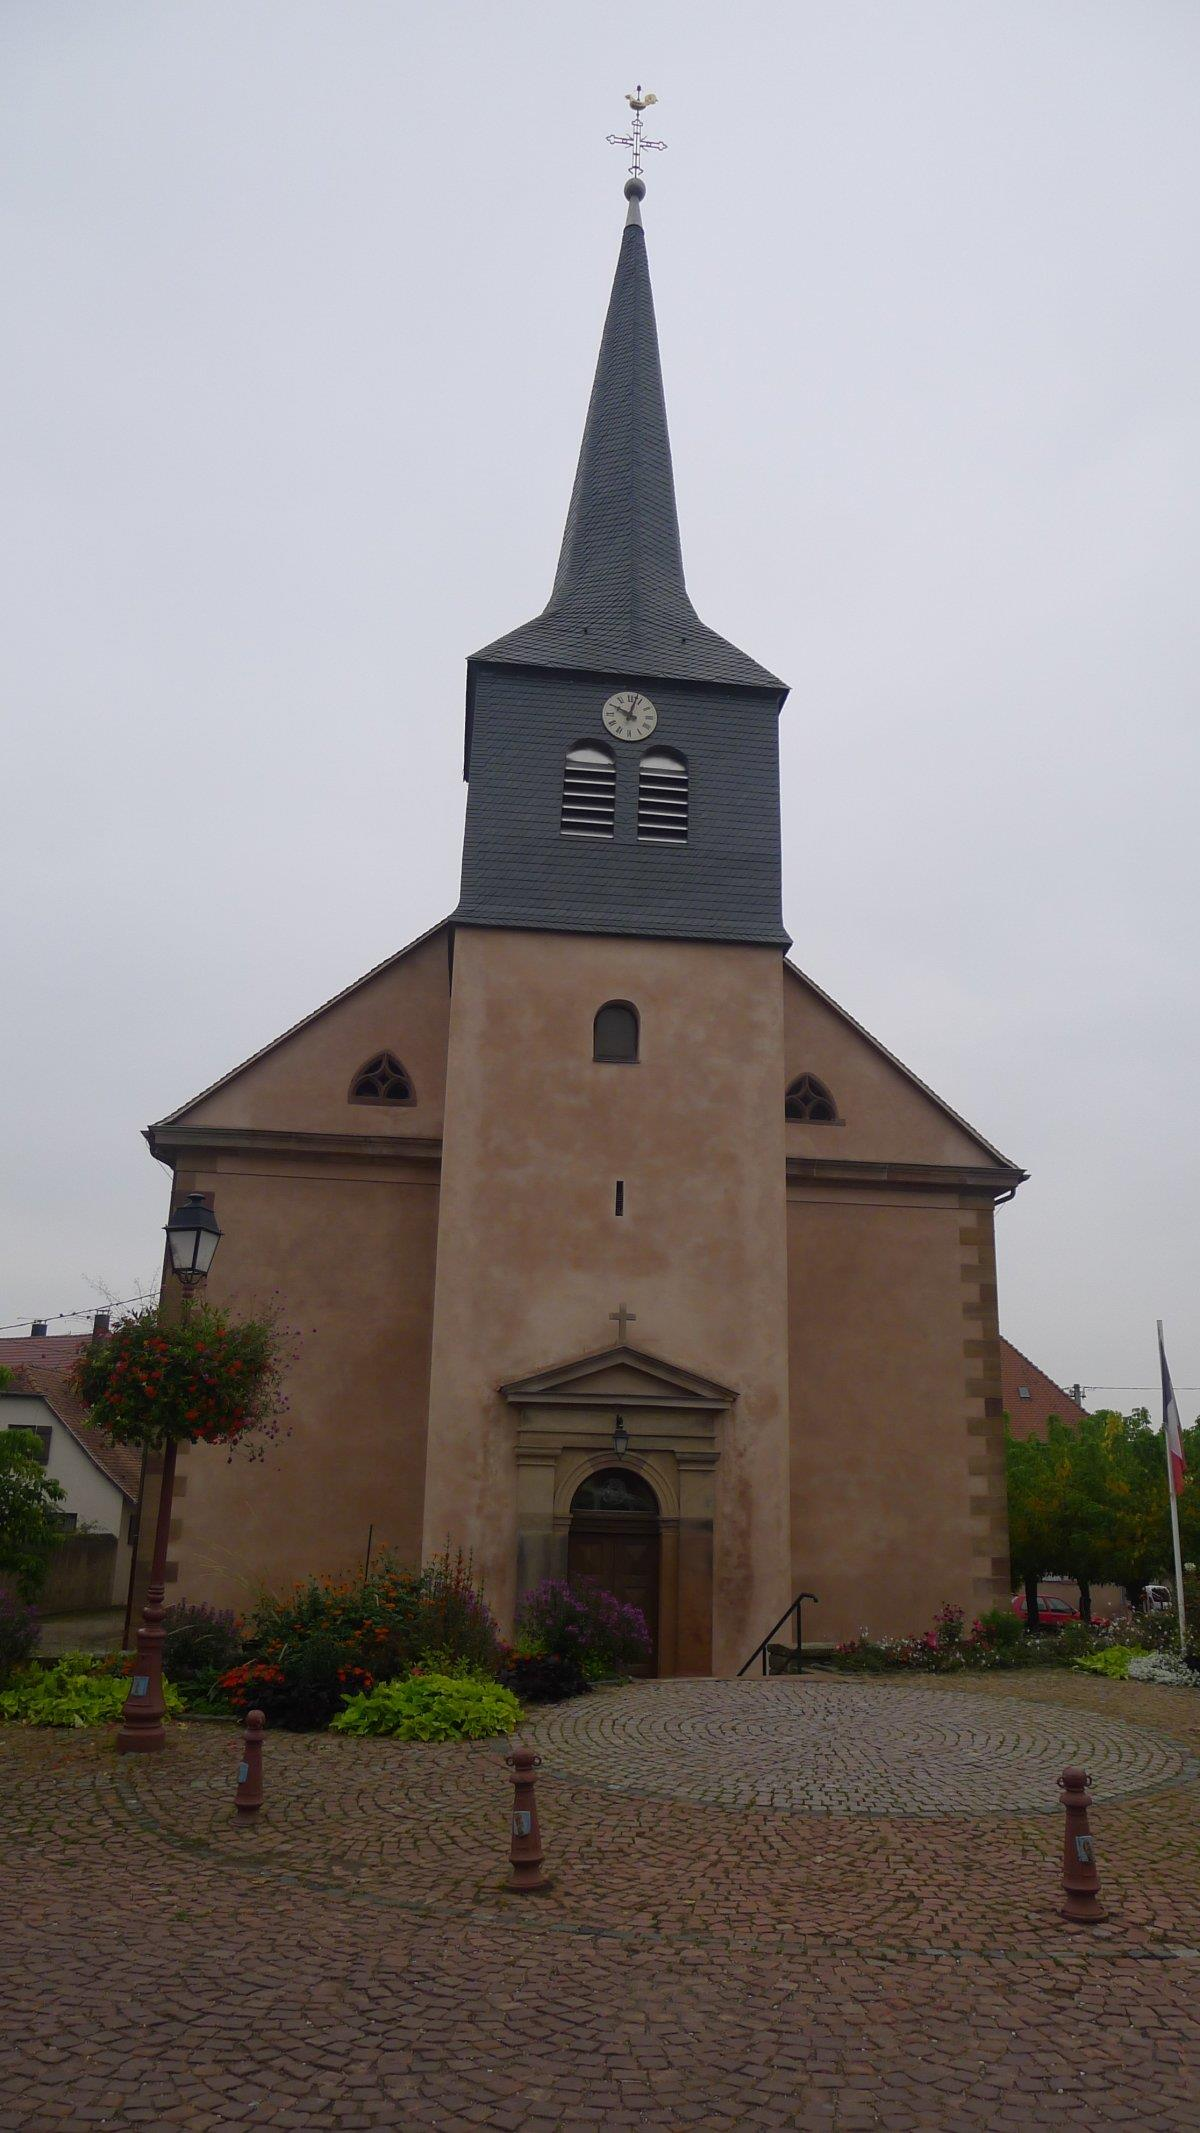 The Church of St Etienne